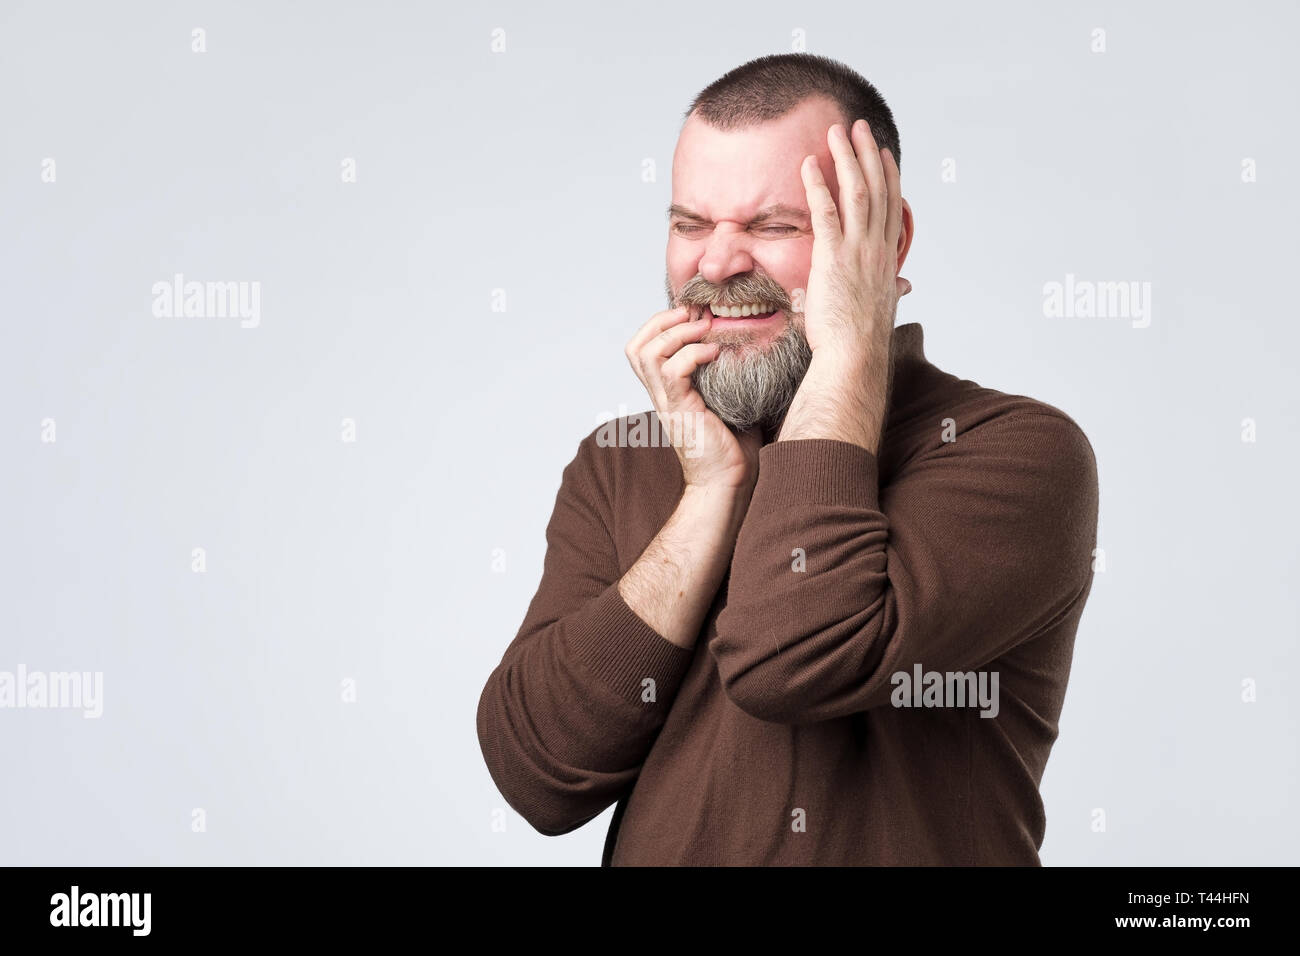 man feeling pain suffering from bad toothache. - Stock Image